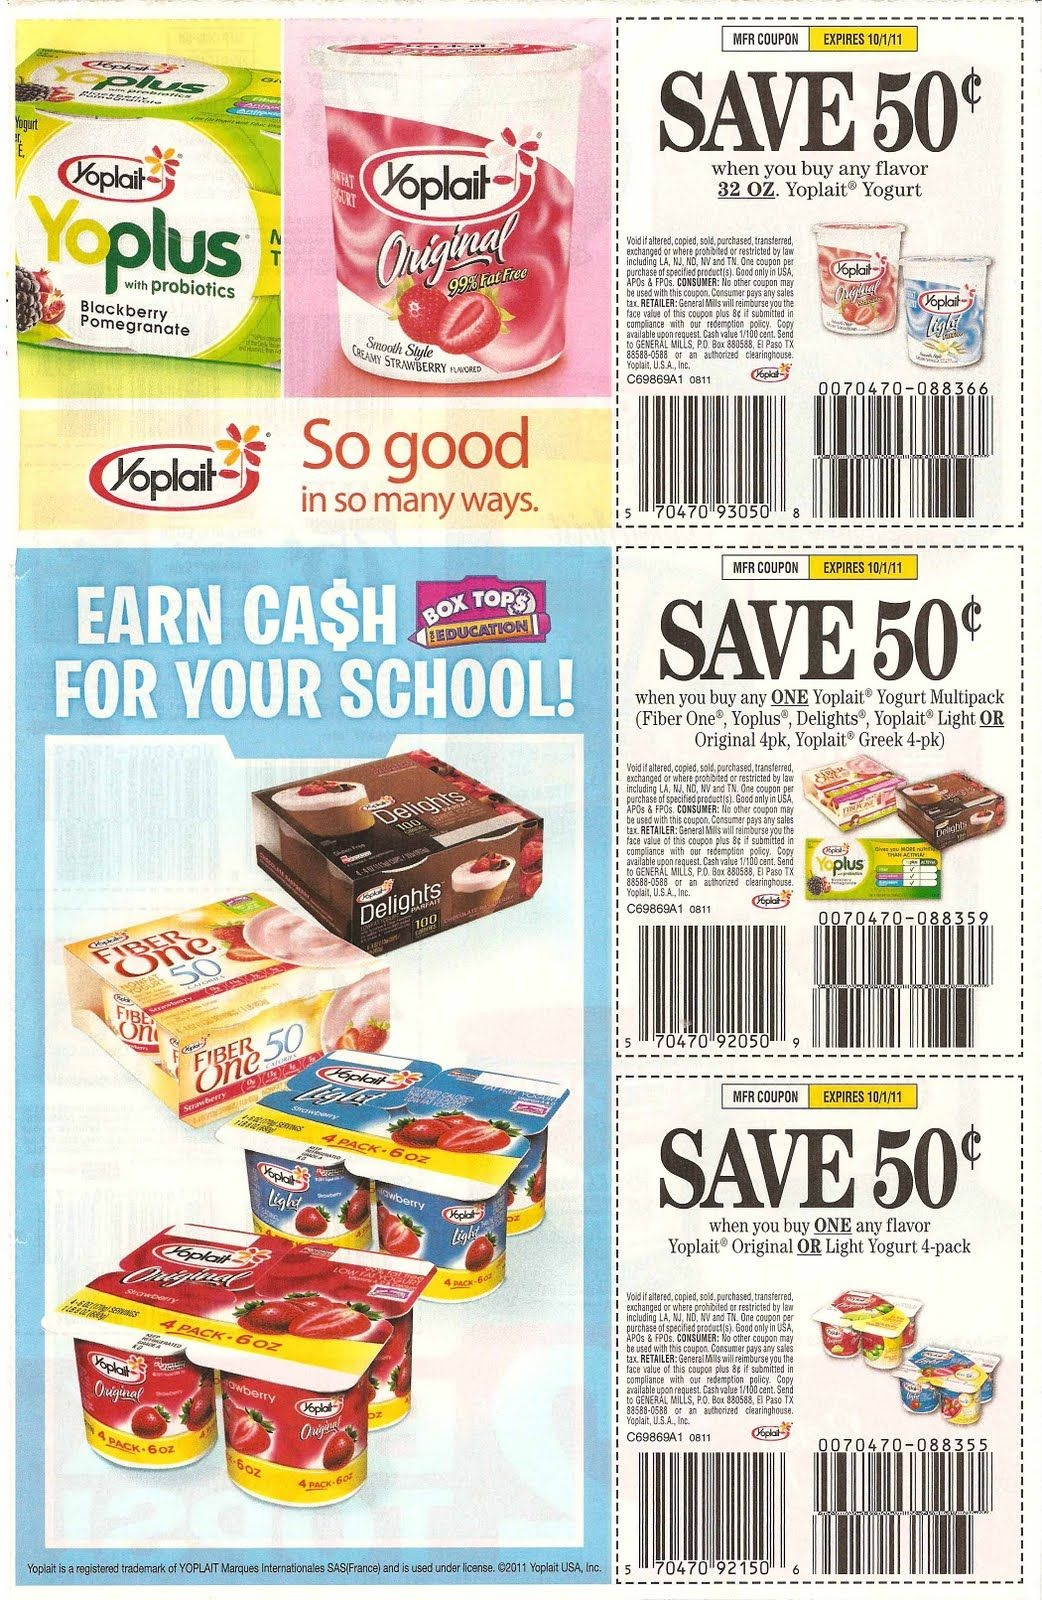 Free Printable Grocery Coupons For Groceries, Food, Family And - Manufacturer Coupons Free Printable Groceries